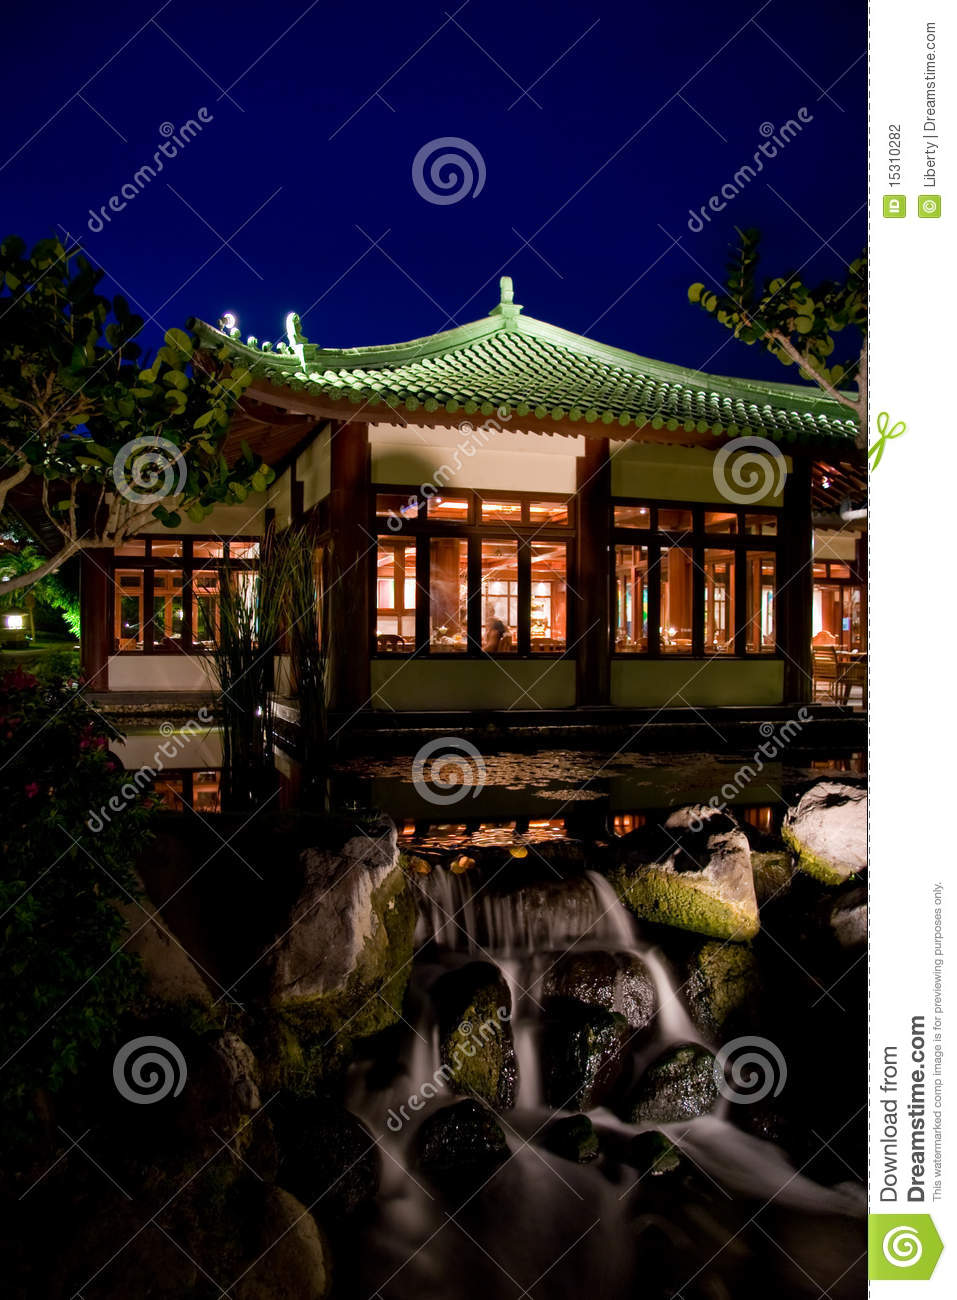 Japanese garden by night stock photo Image of lights 15310282